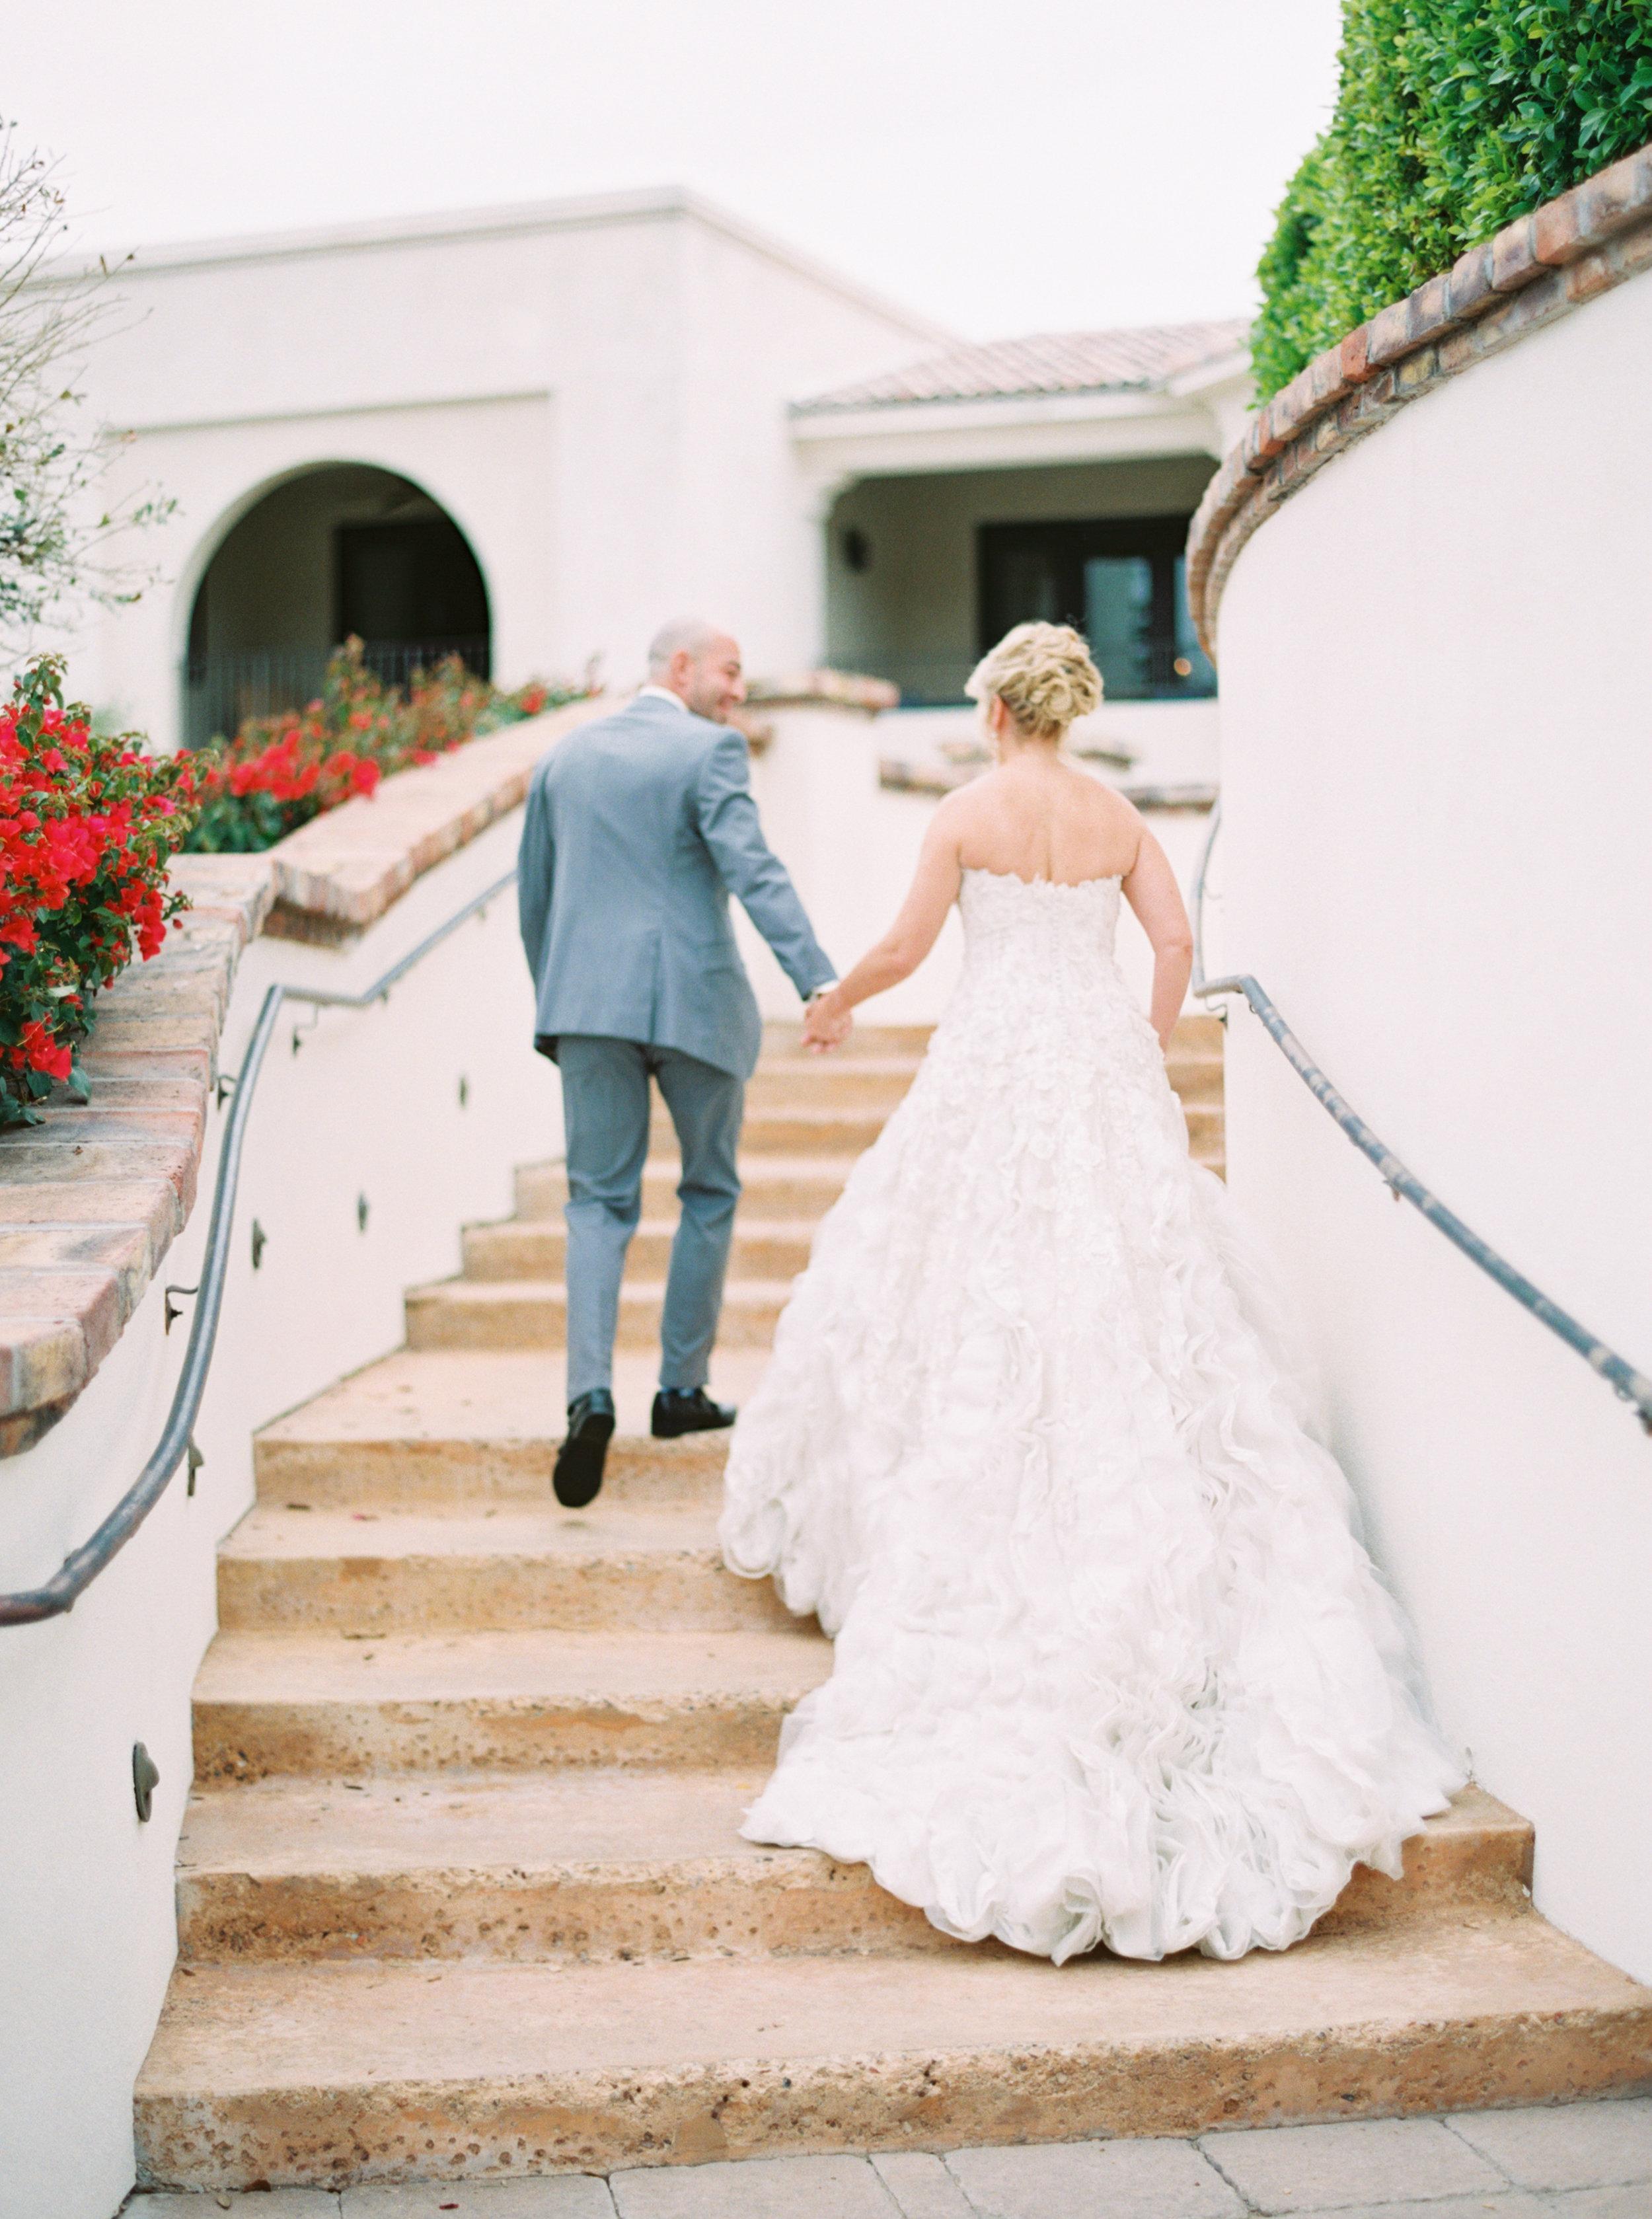 17 bride groom leaving first look photos before ceremony Life Design Events photos by Melissa Jill Photography.jpg